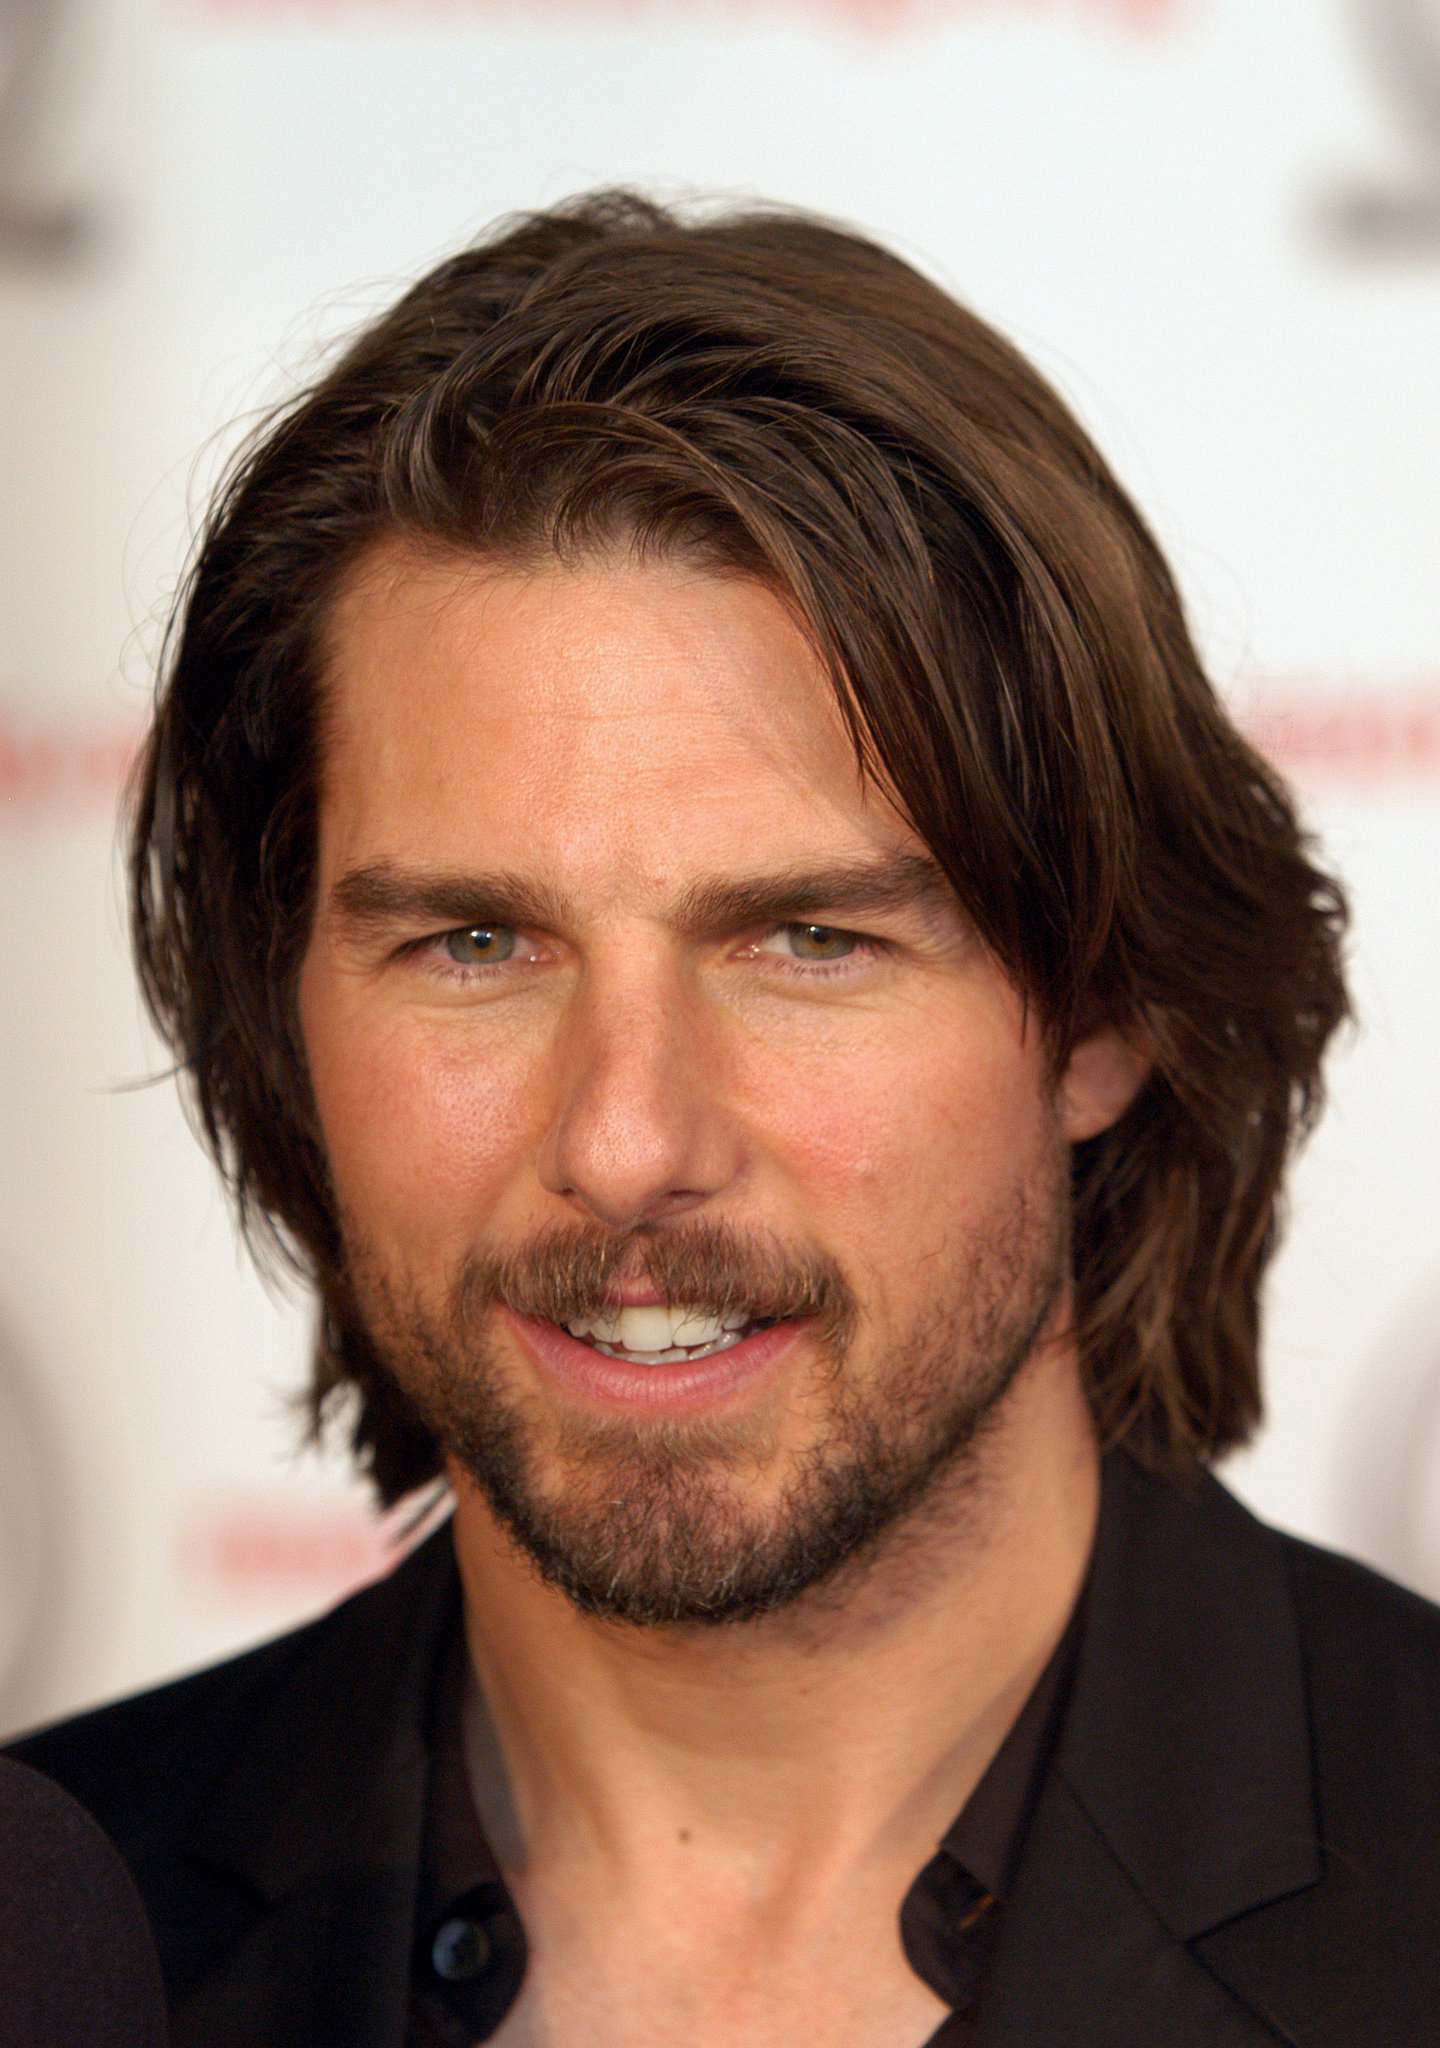 Tom Cruise 15 Hot Celebrity Guys Who Make The Man Bob